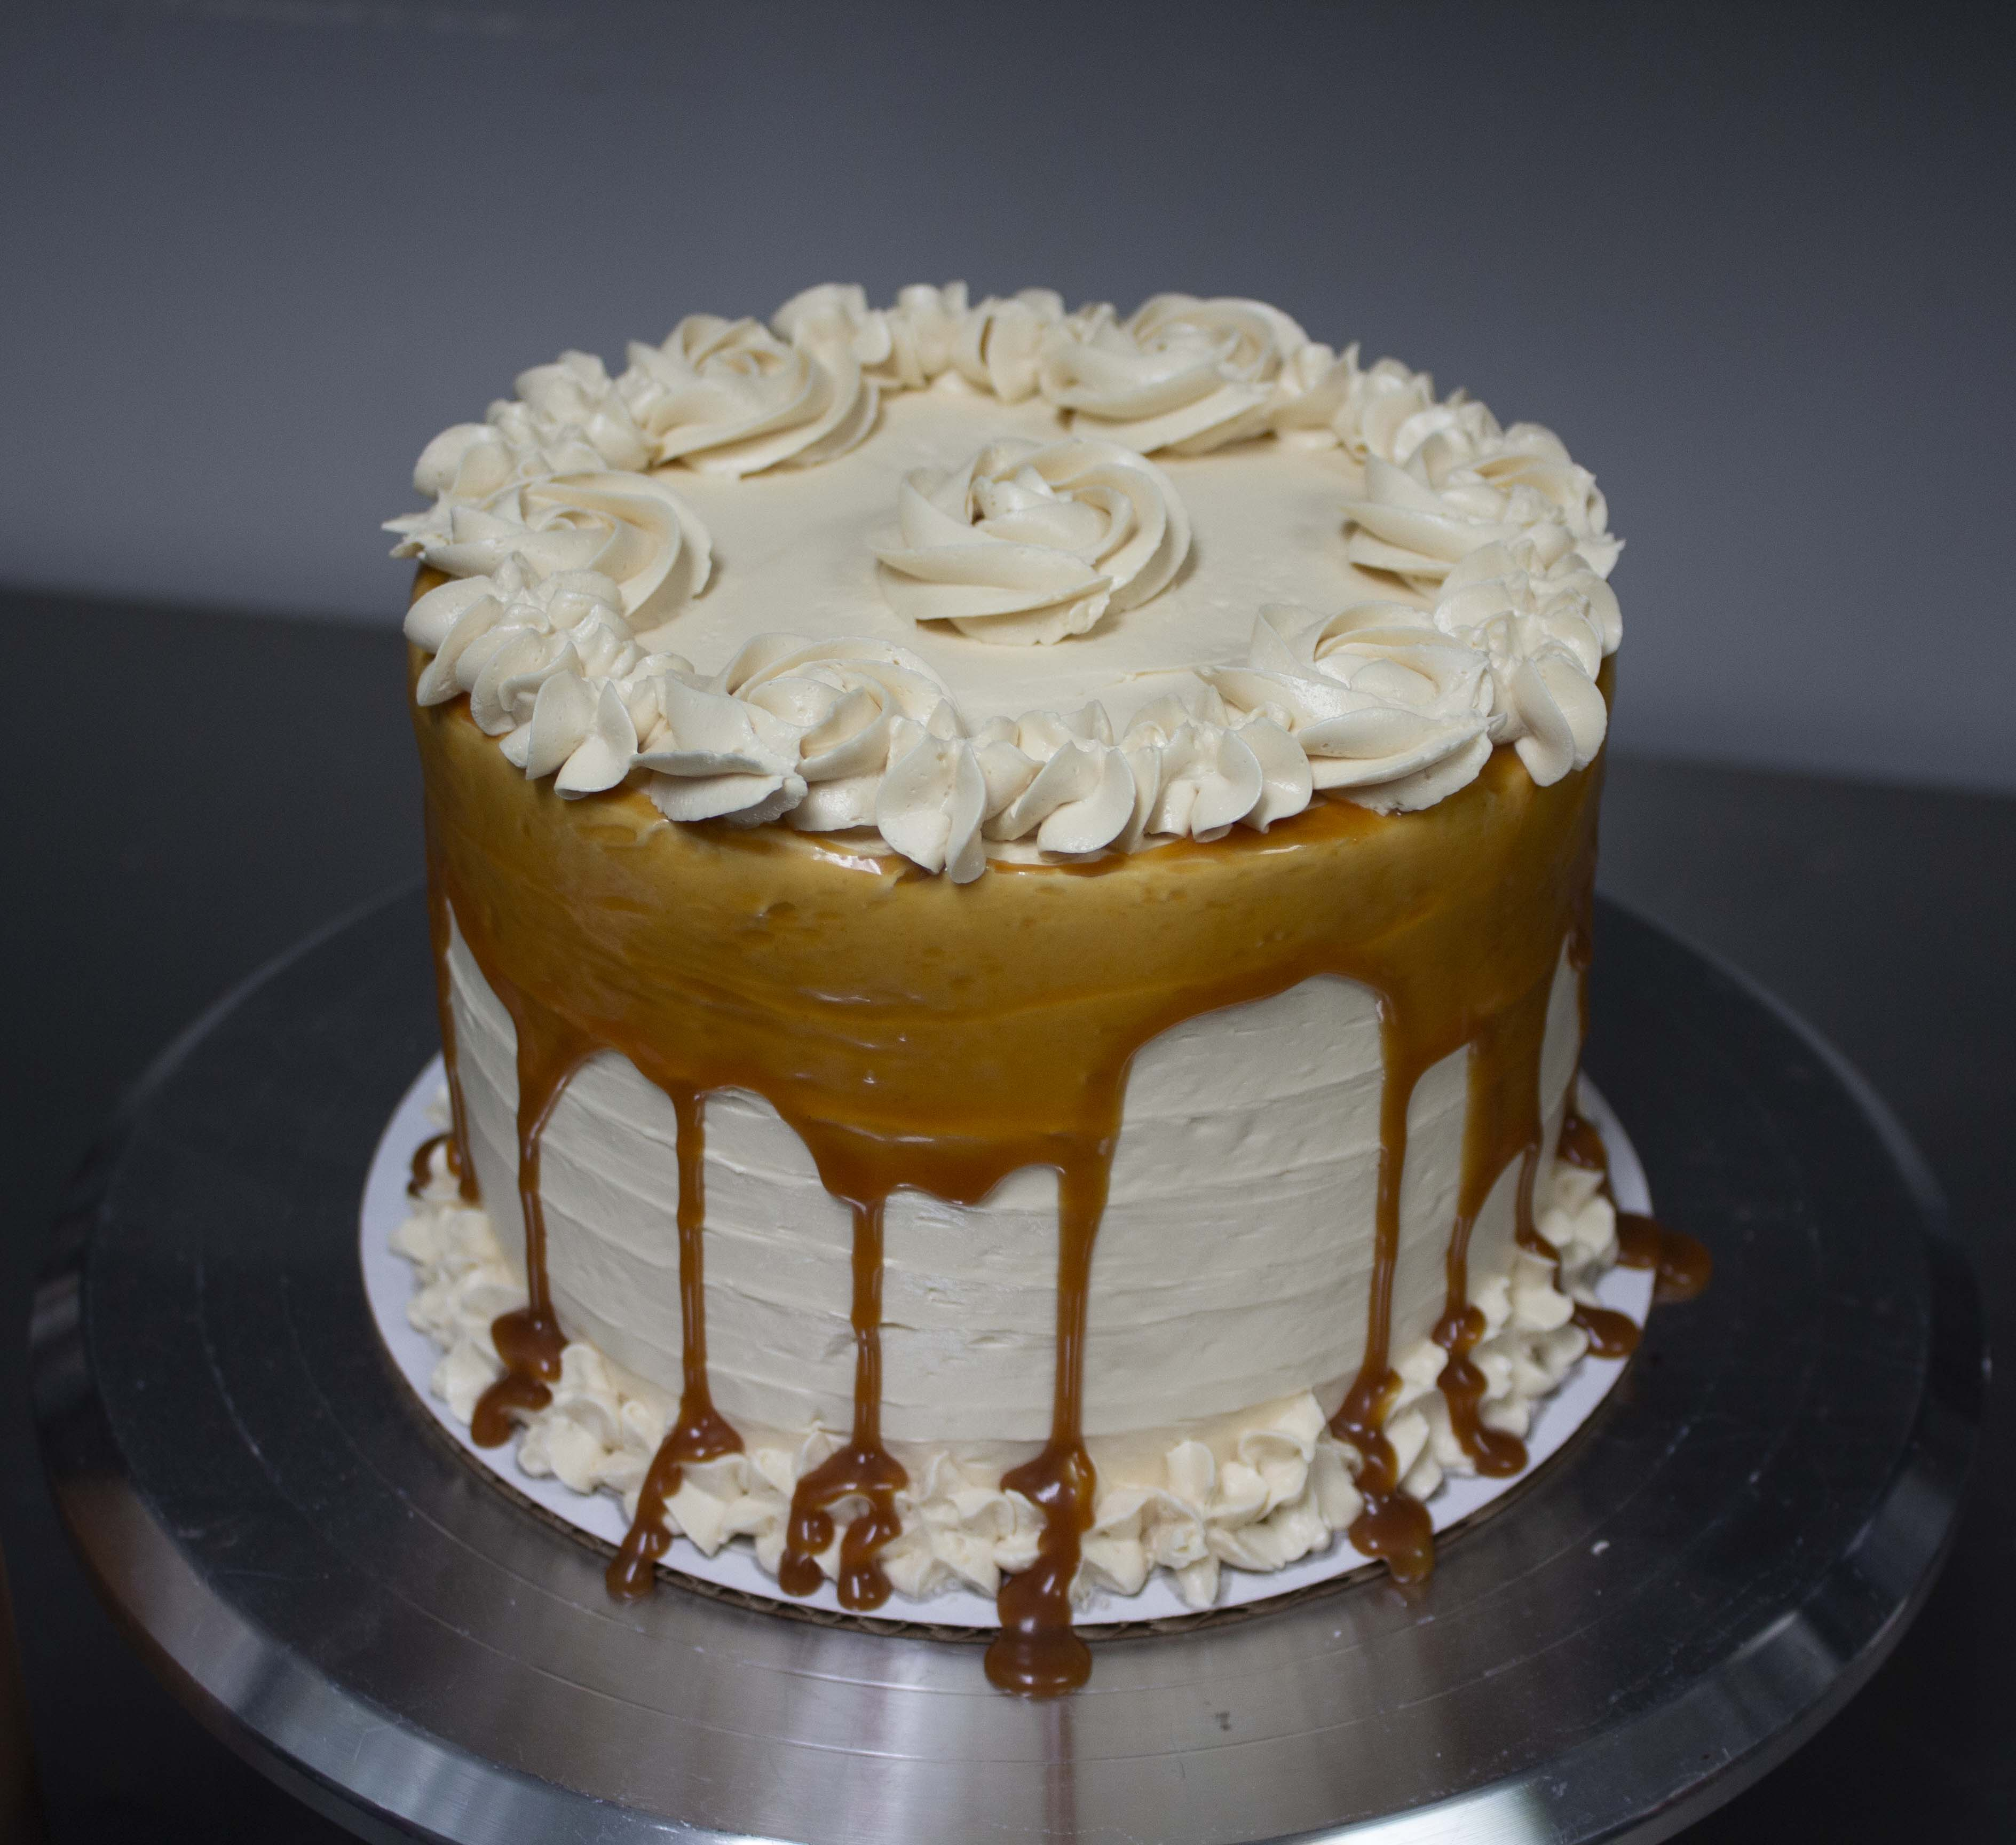 6in round cake with caramel buttercream and caramel drizzle